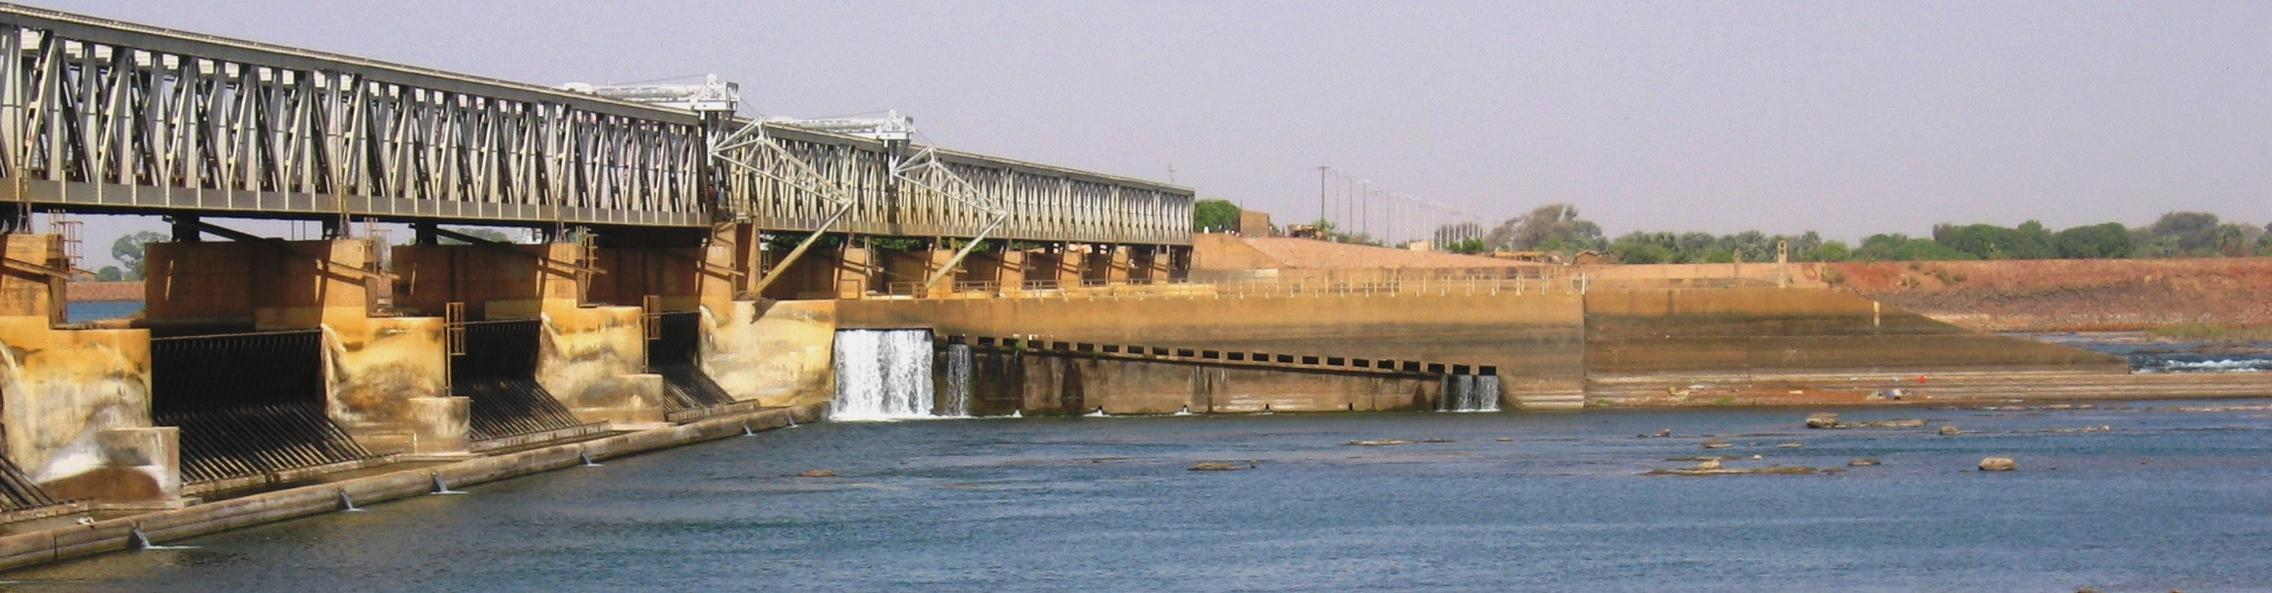 Hydrological infrastructure